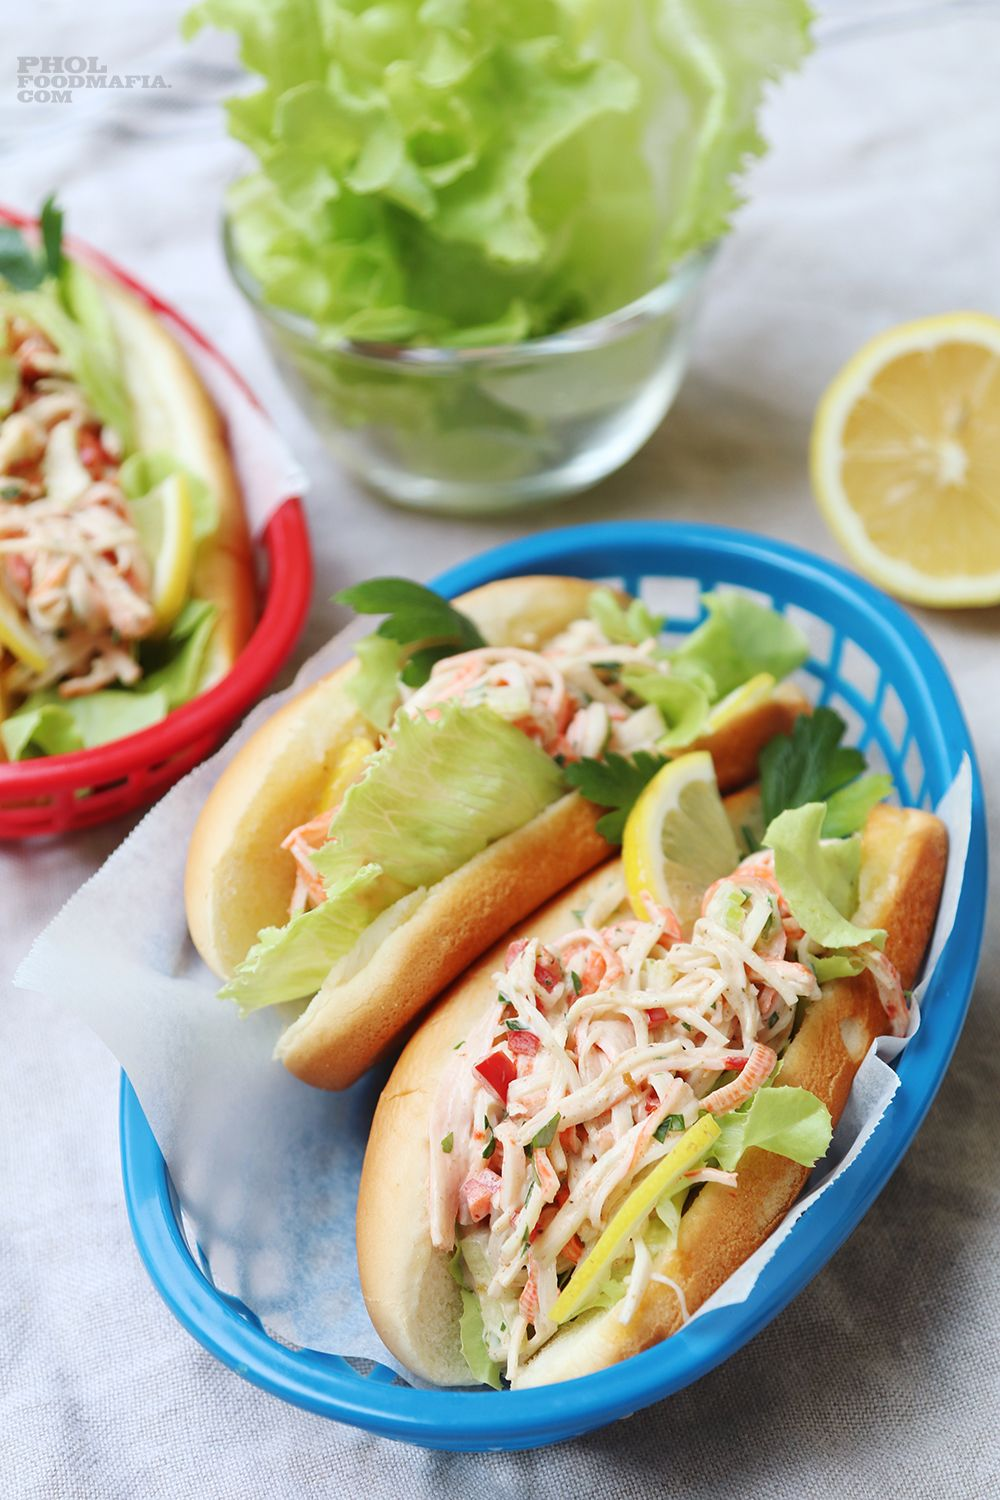 Delicious salads with crab sticks - variations of classic recipes 29